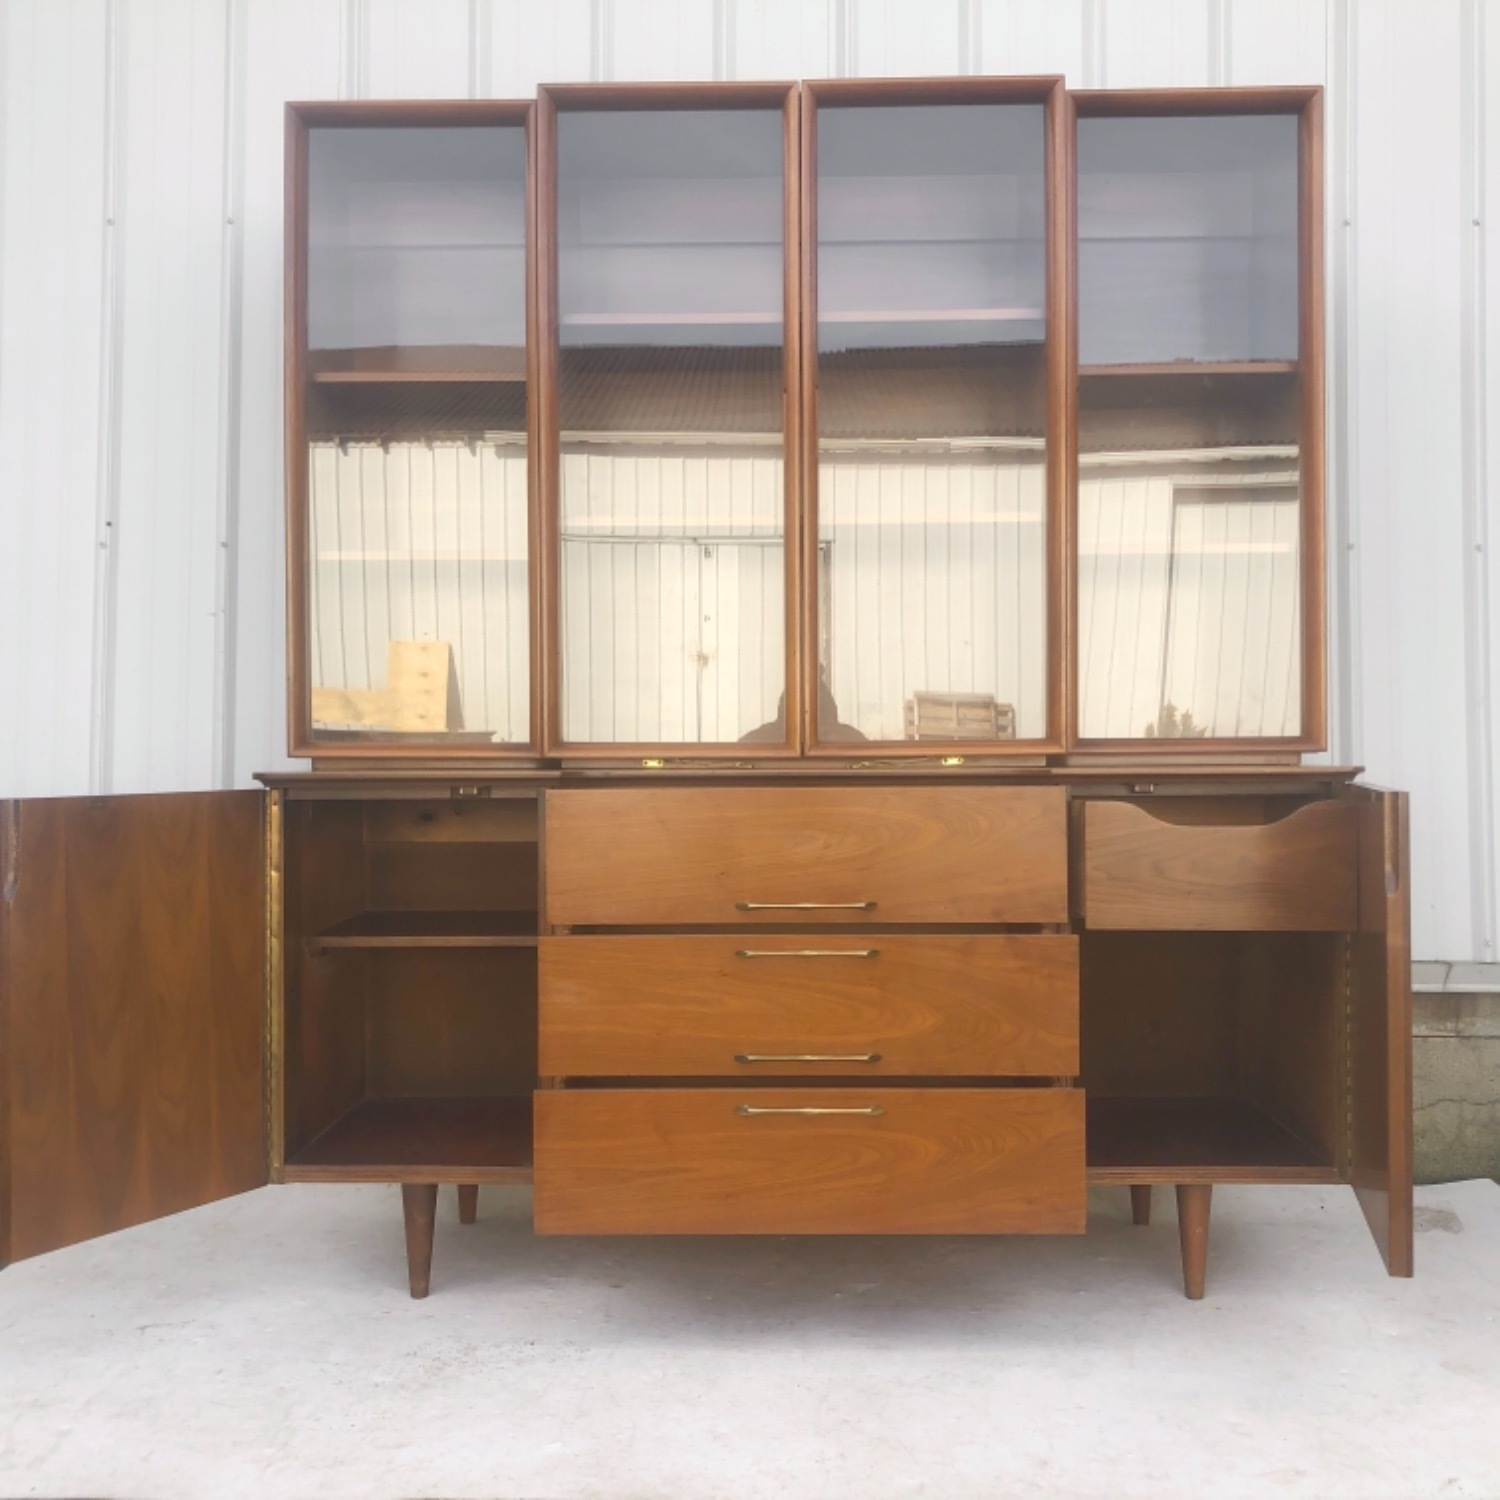 Mid-Century Modern Sideboard With Display Topper - image-2